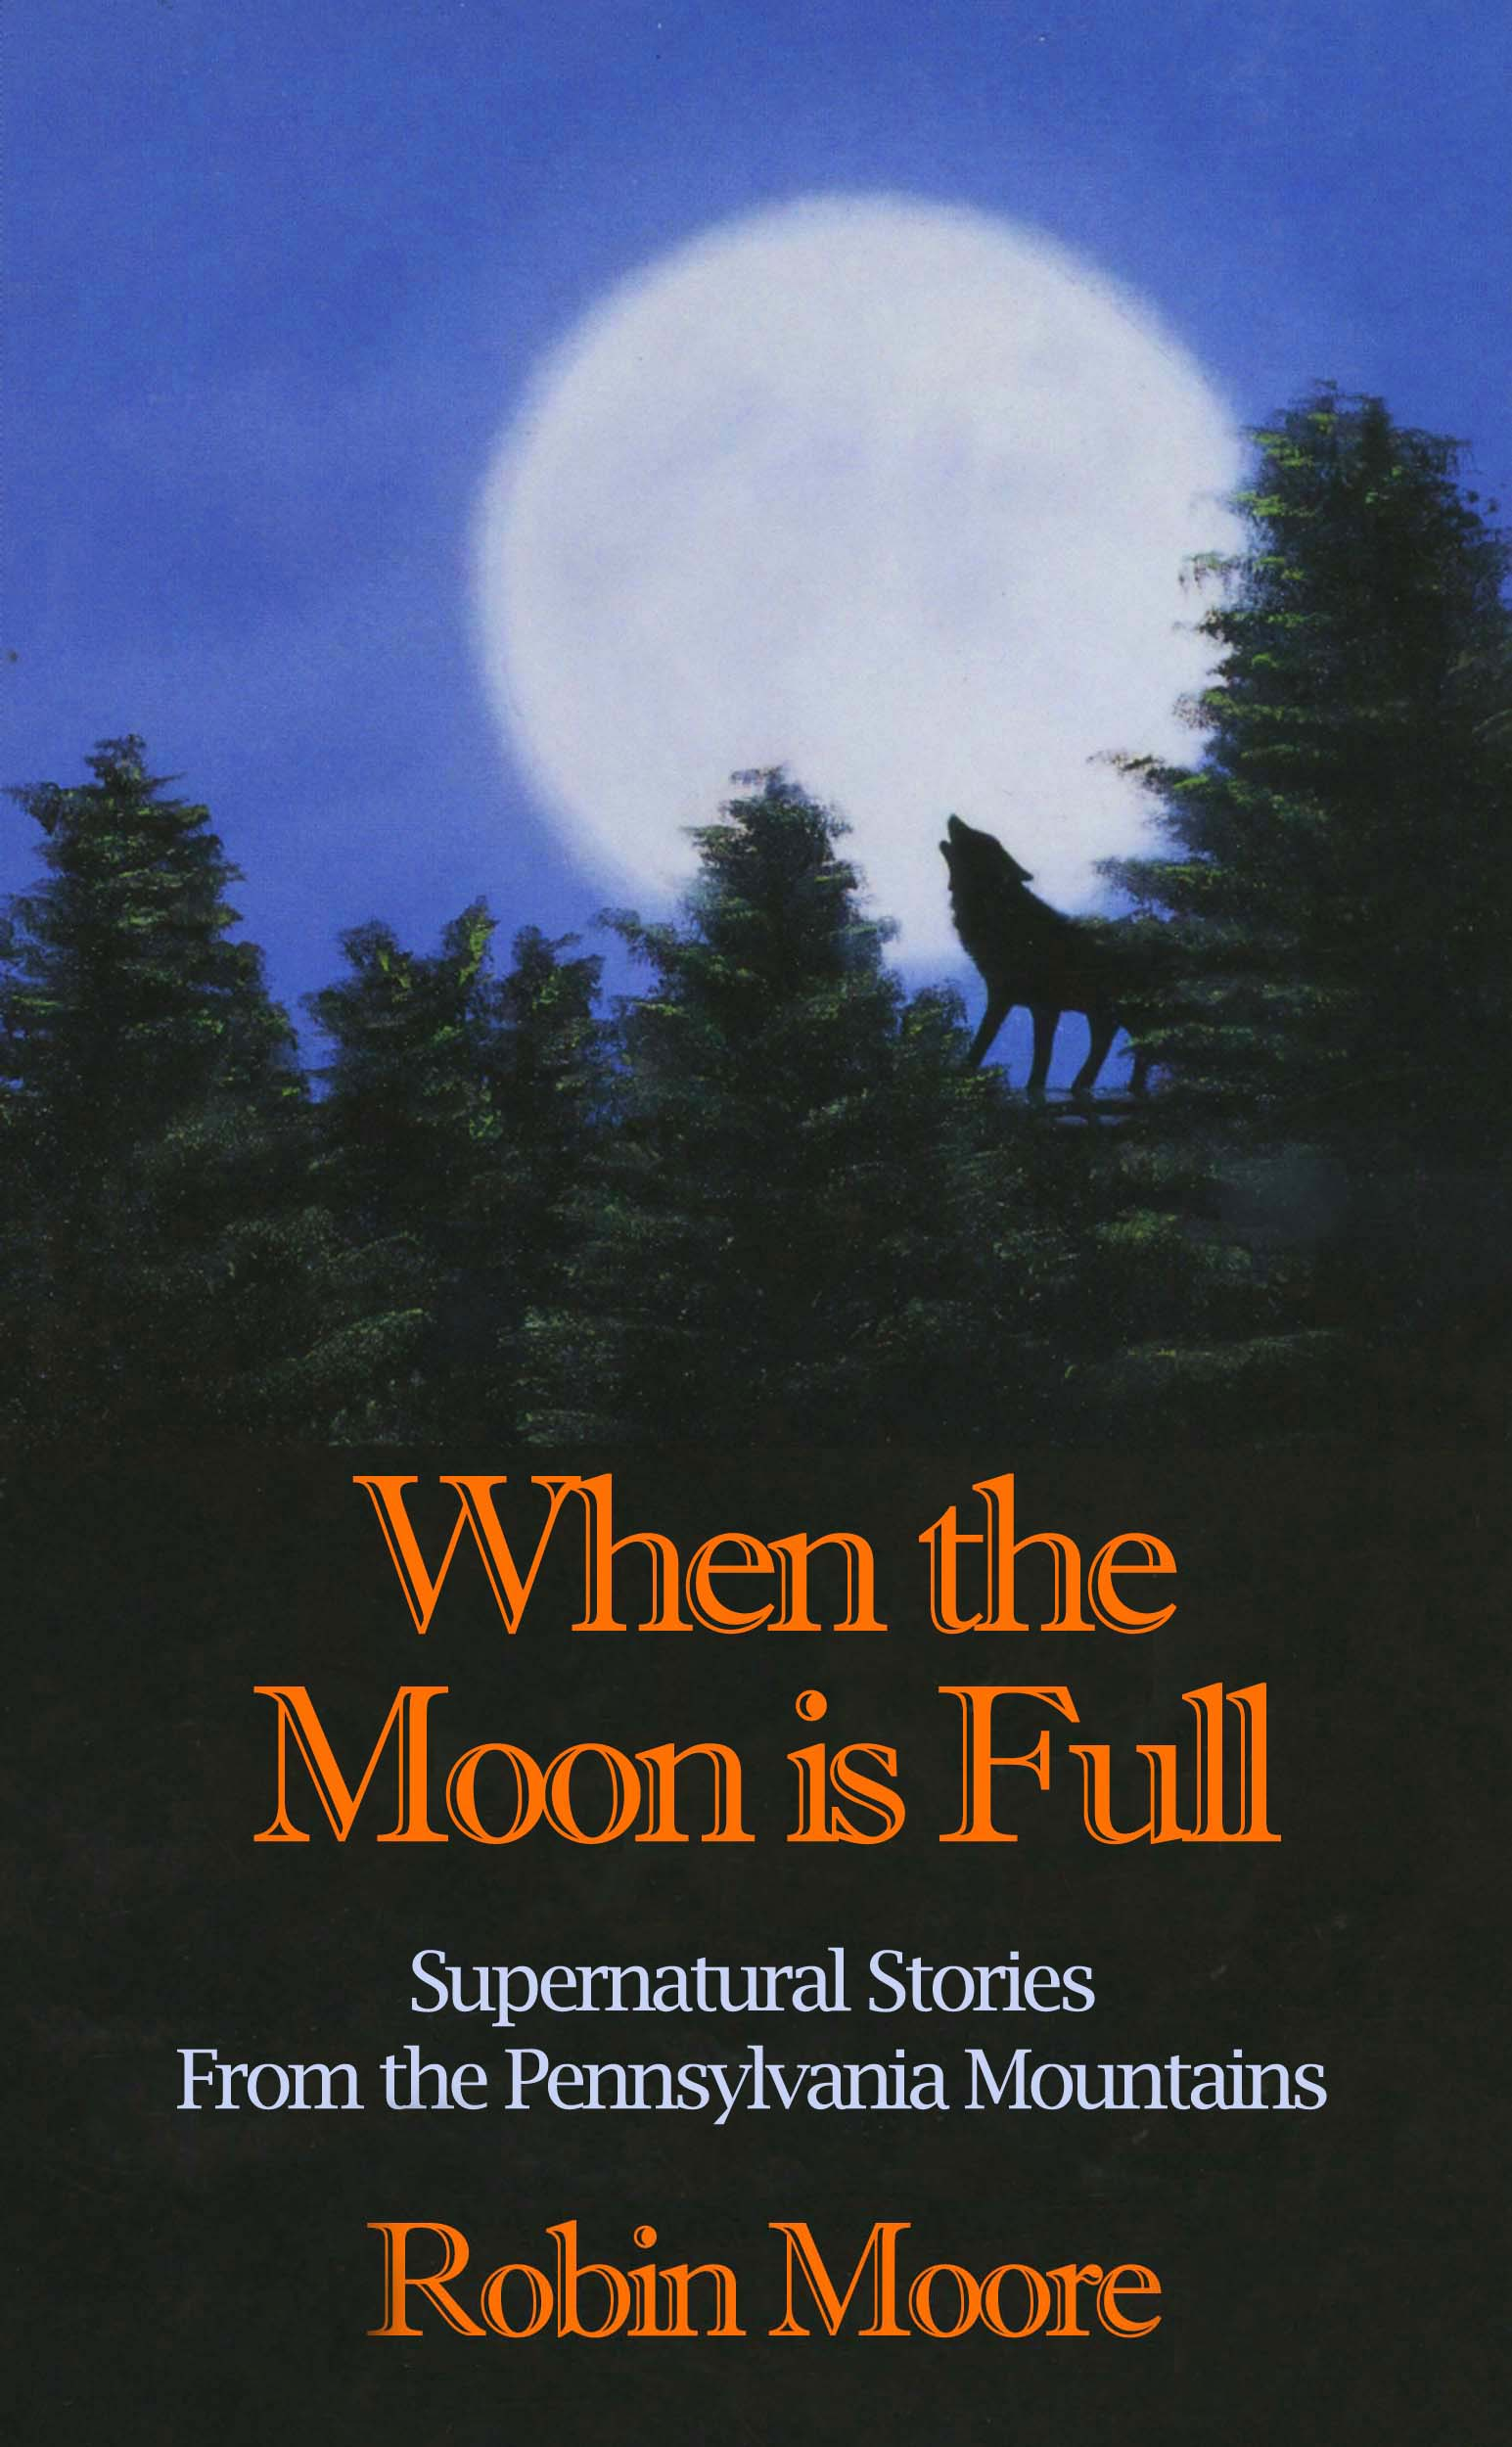 whenthemoonisfull copy1